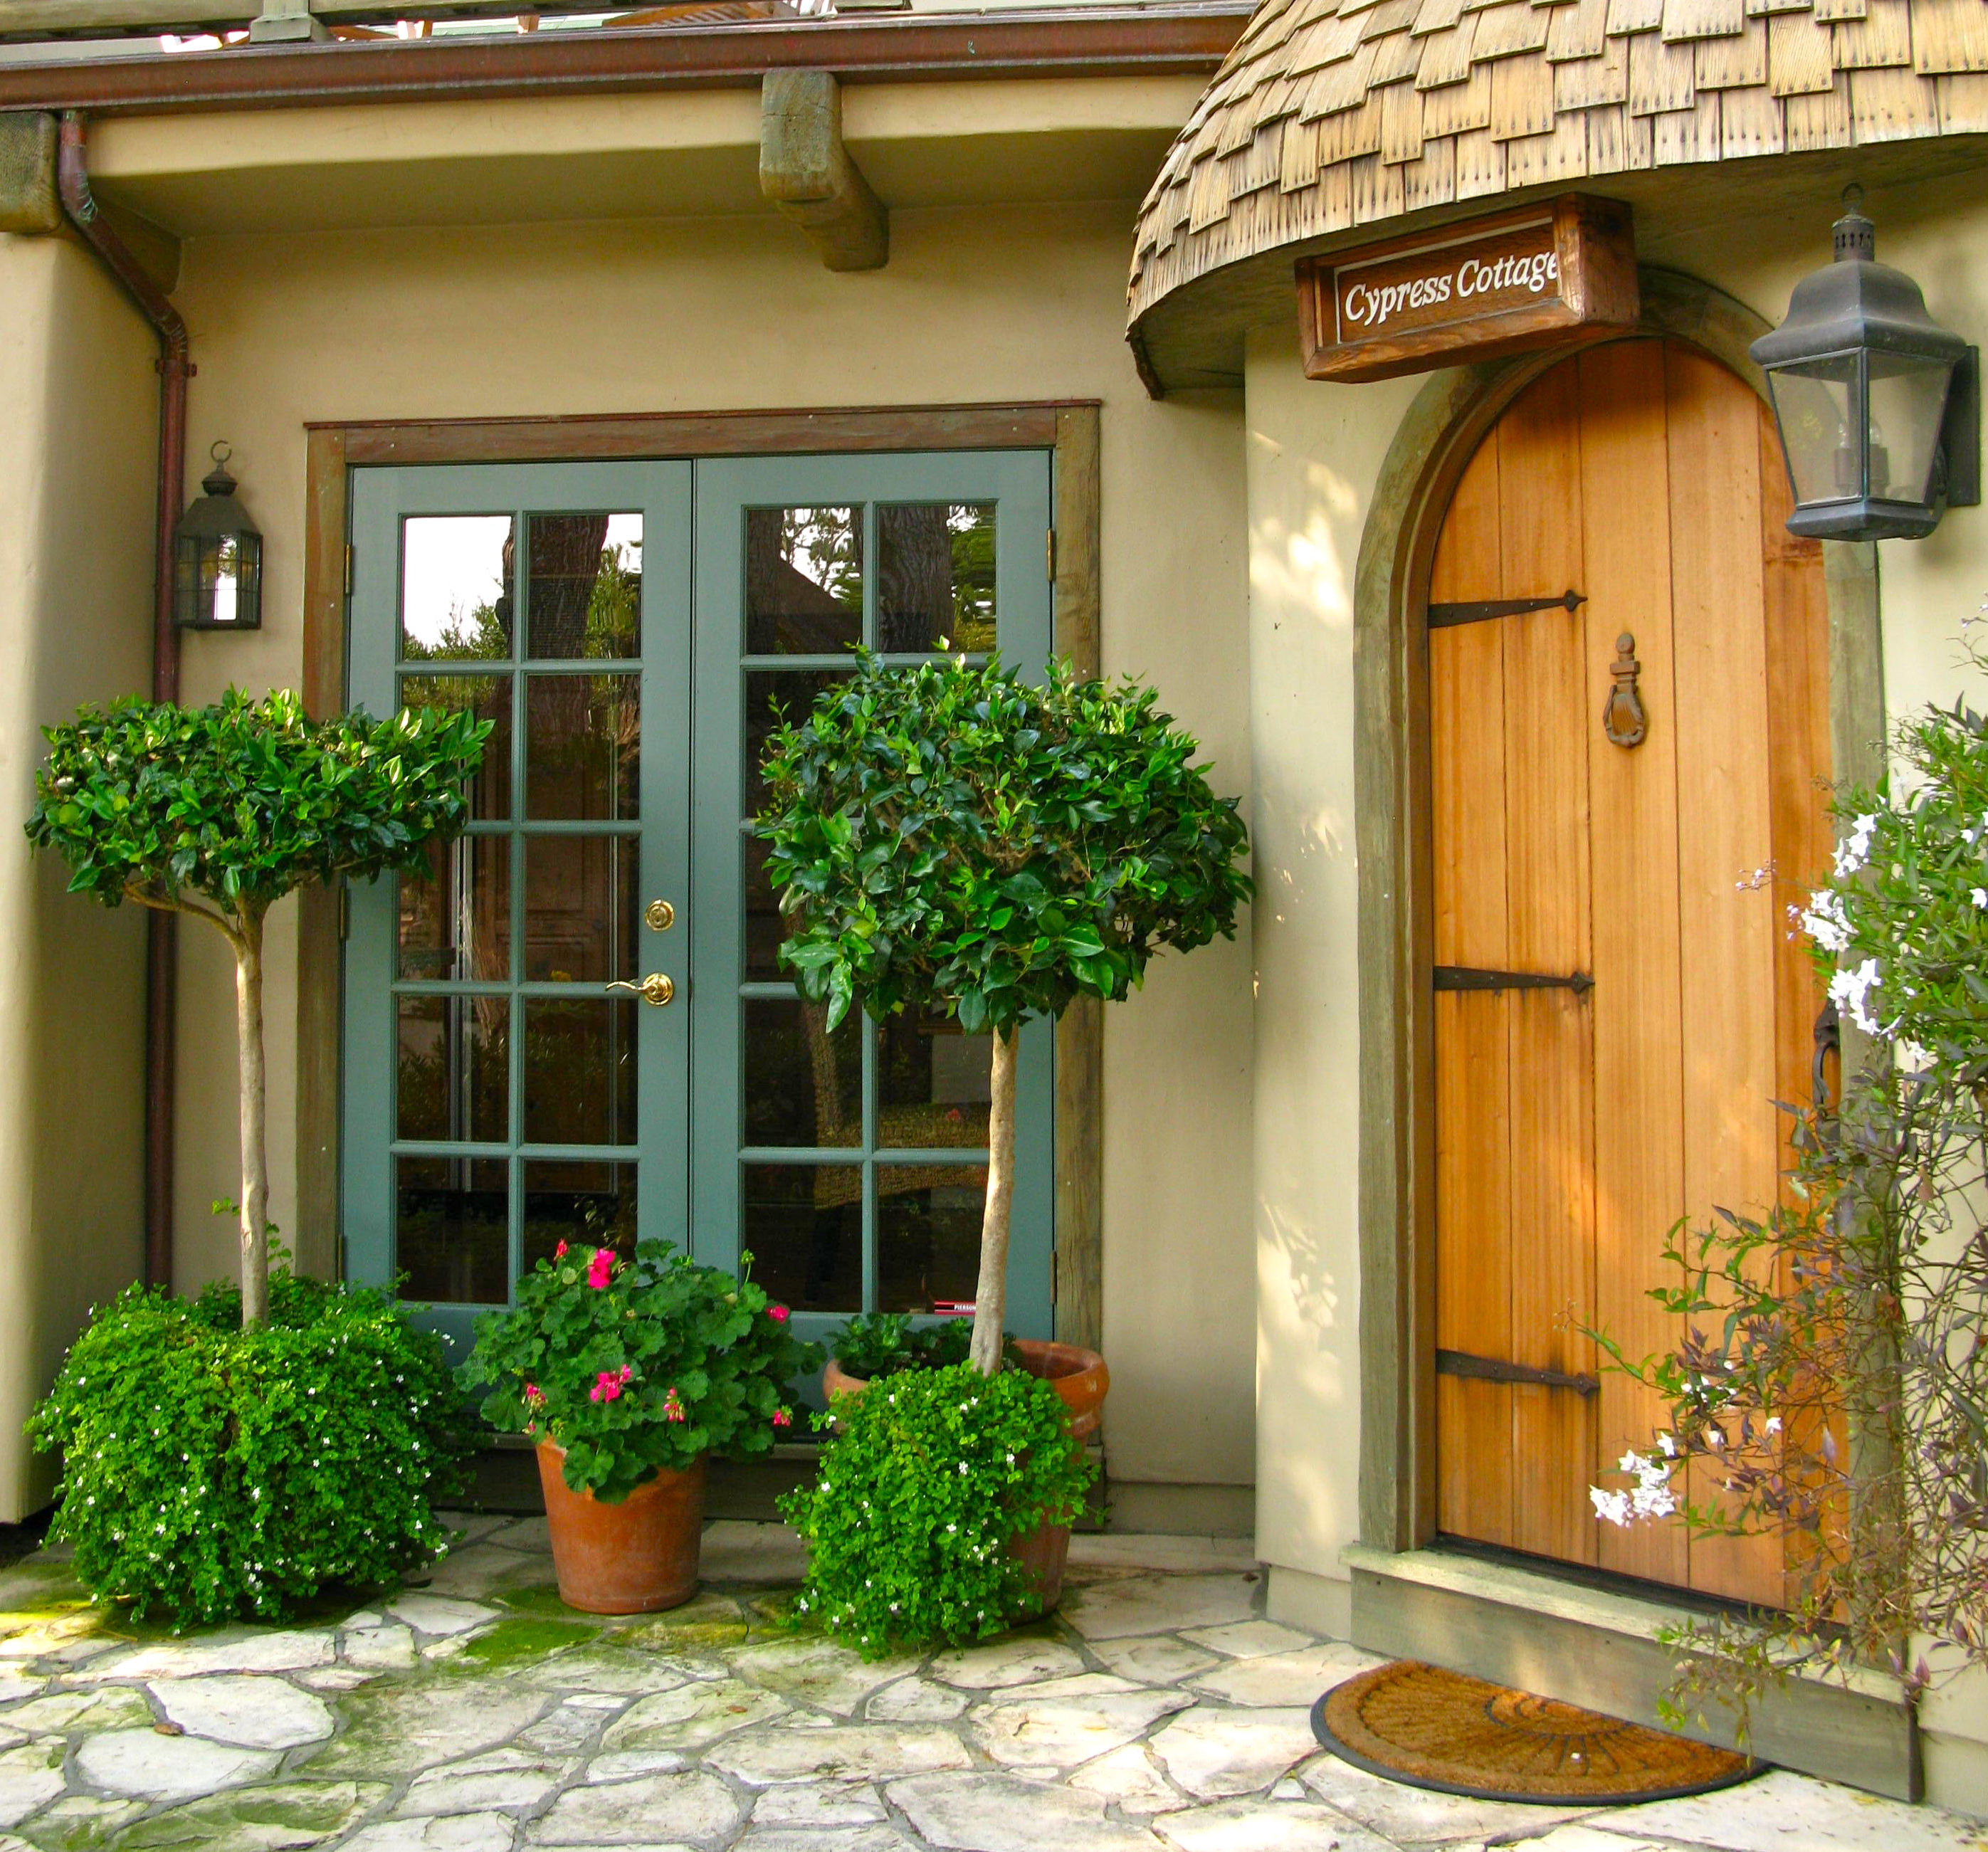 2602 #376D15 The Pot To The Right Of The Front Door Contains Potato Vine On A  pic Cypress Exterior Doors 45512793